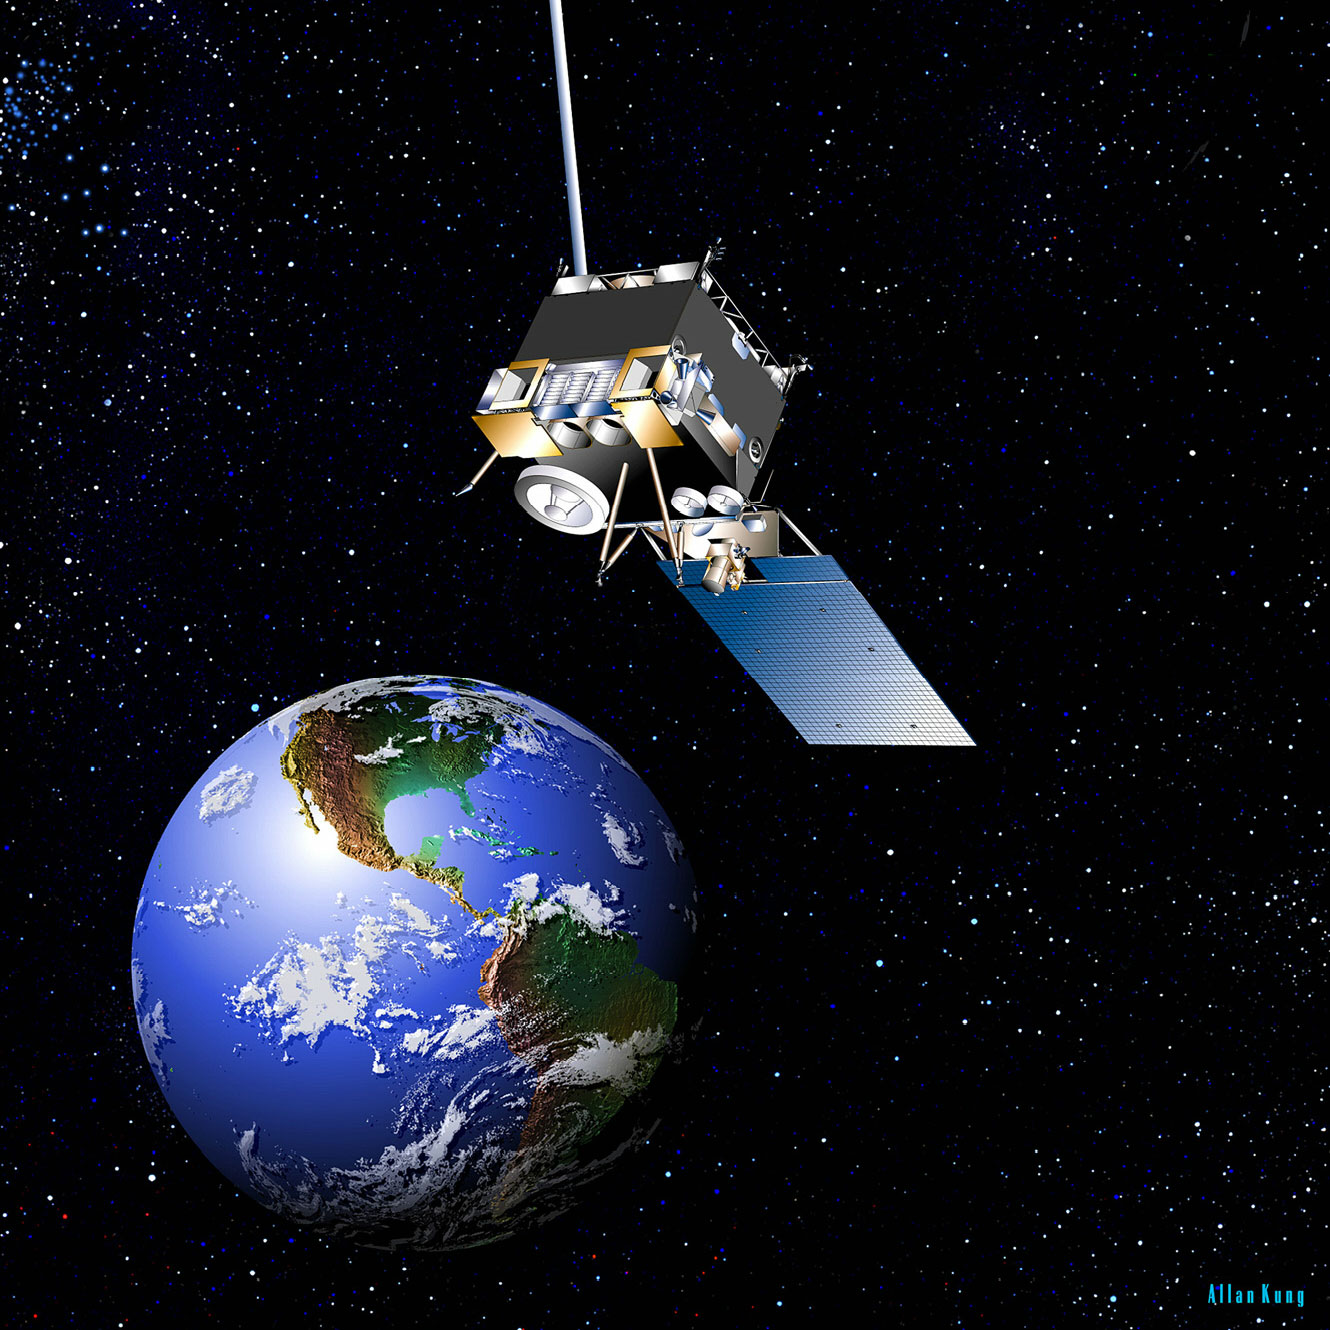 NOAA's GOES-13 Weather Satellite Currently Has an Acting